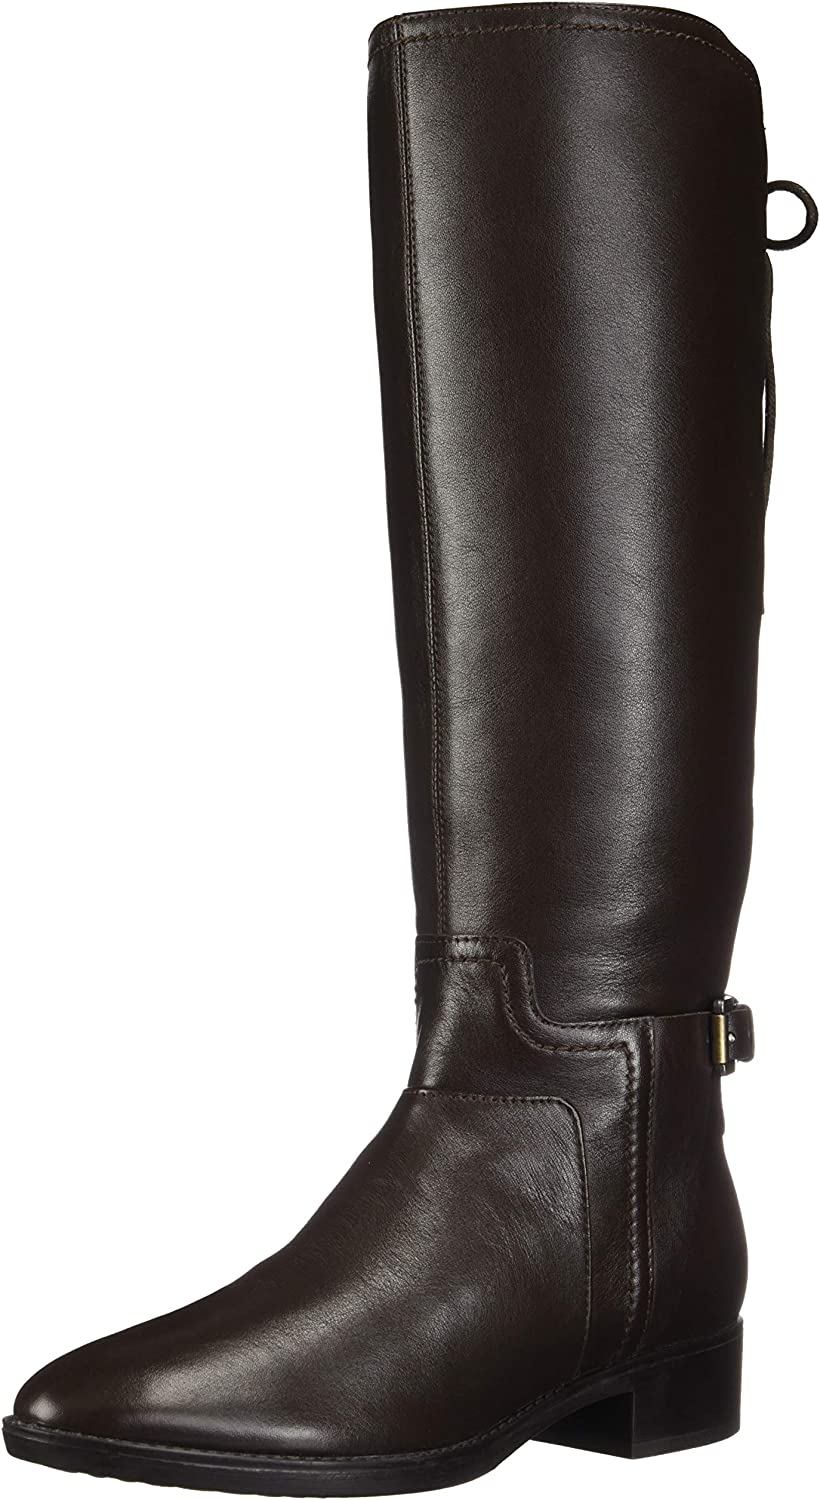 Geox FELICITY Woman: Black Ankle Boots | Geox Fall Winter